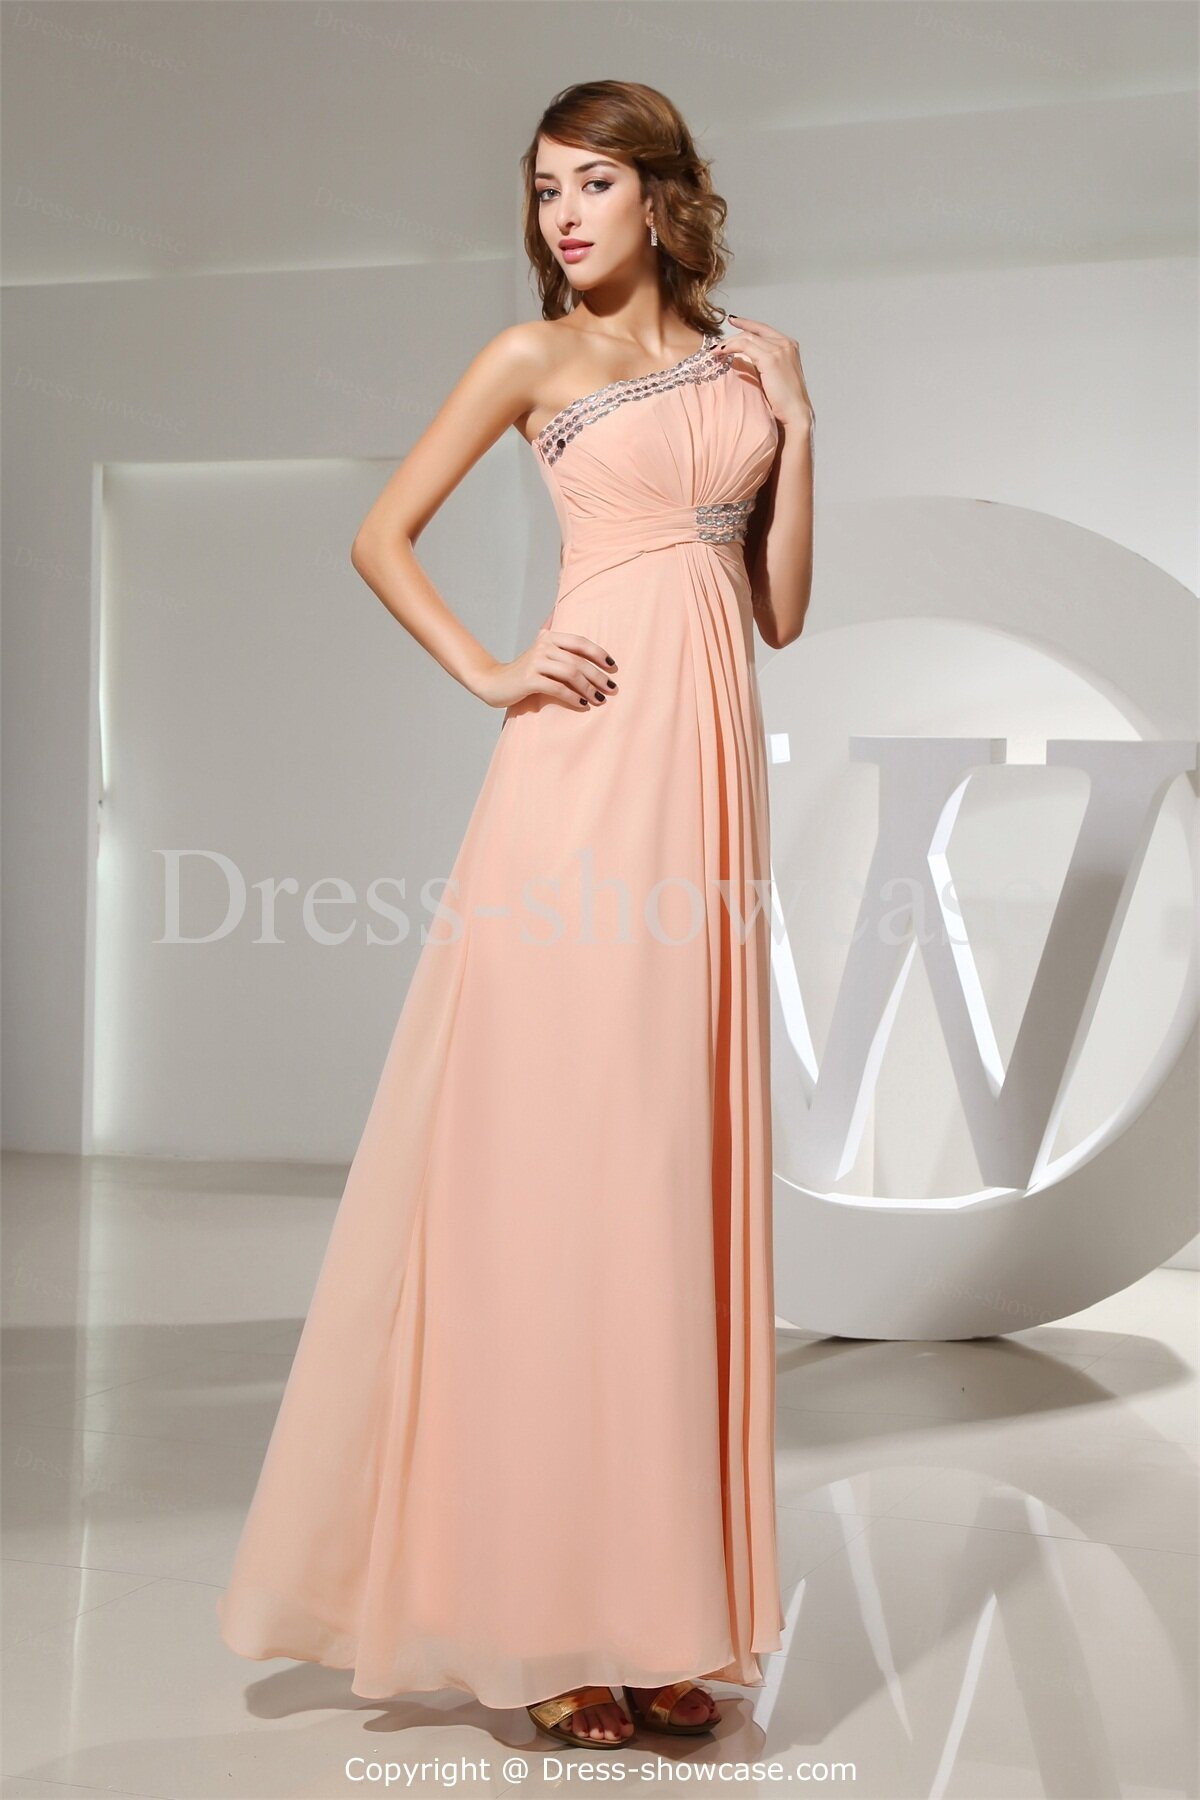 Dazzling and elegant light pink wedding dress